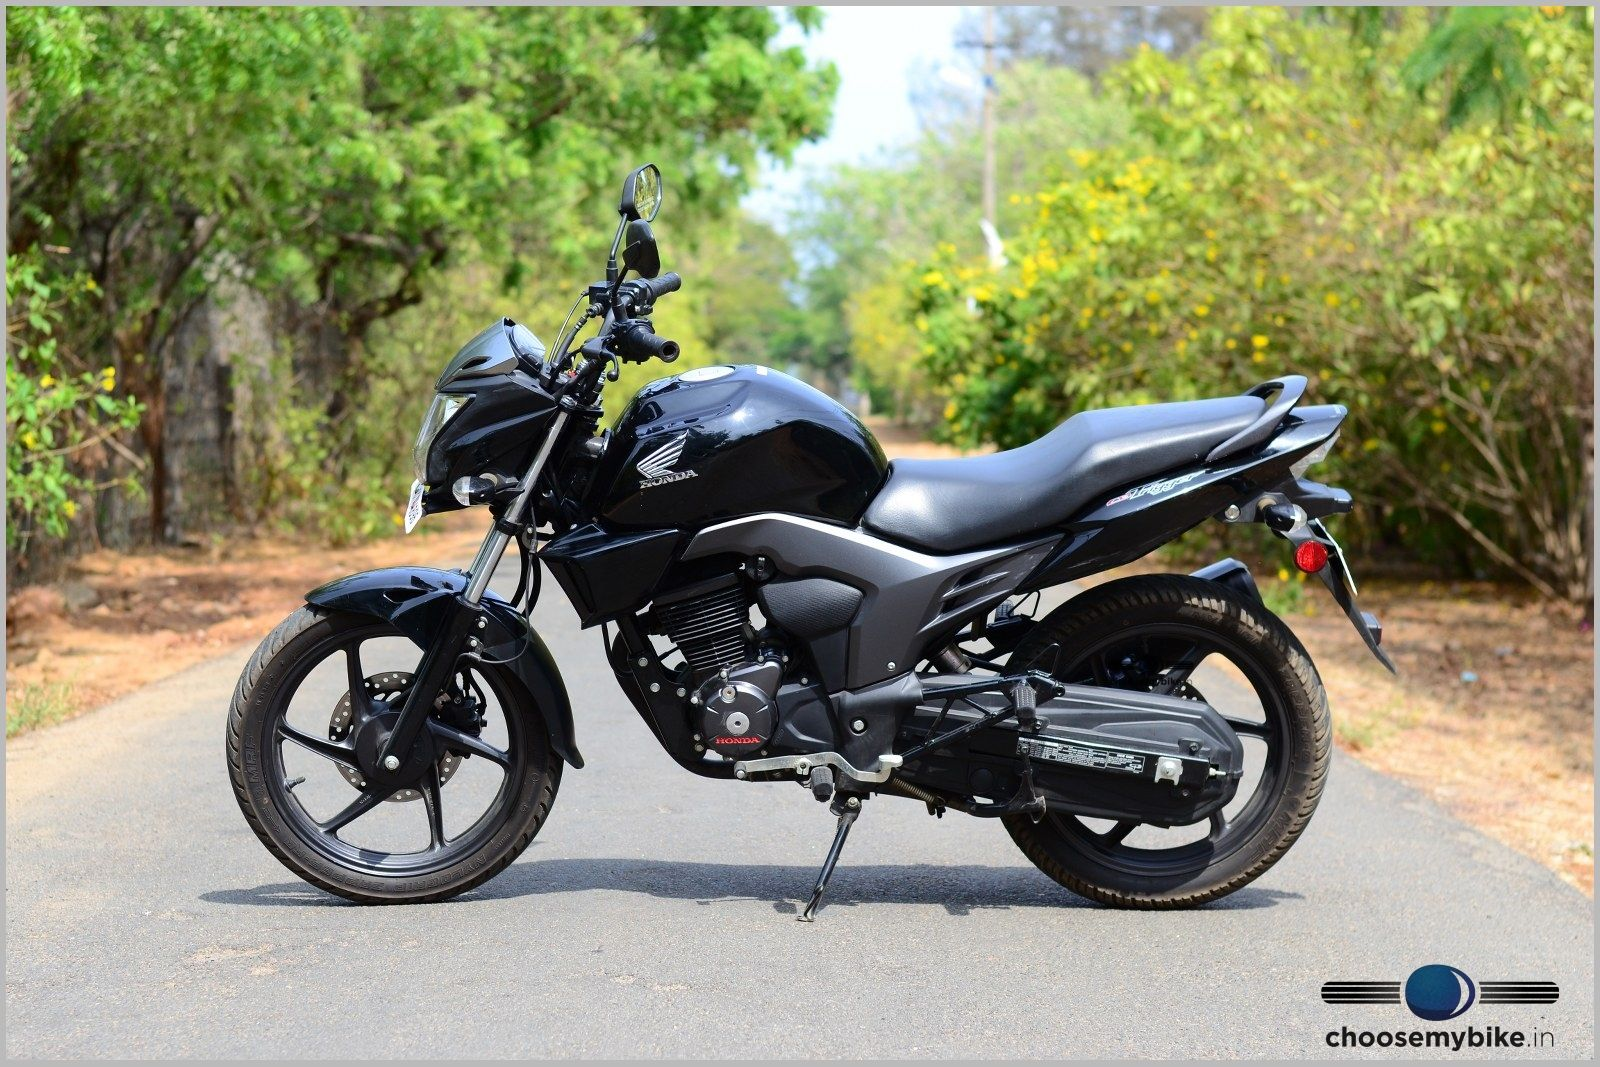 The Honda Cb Trigger Is Amongst The Better Looking Bikes In The